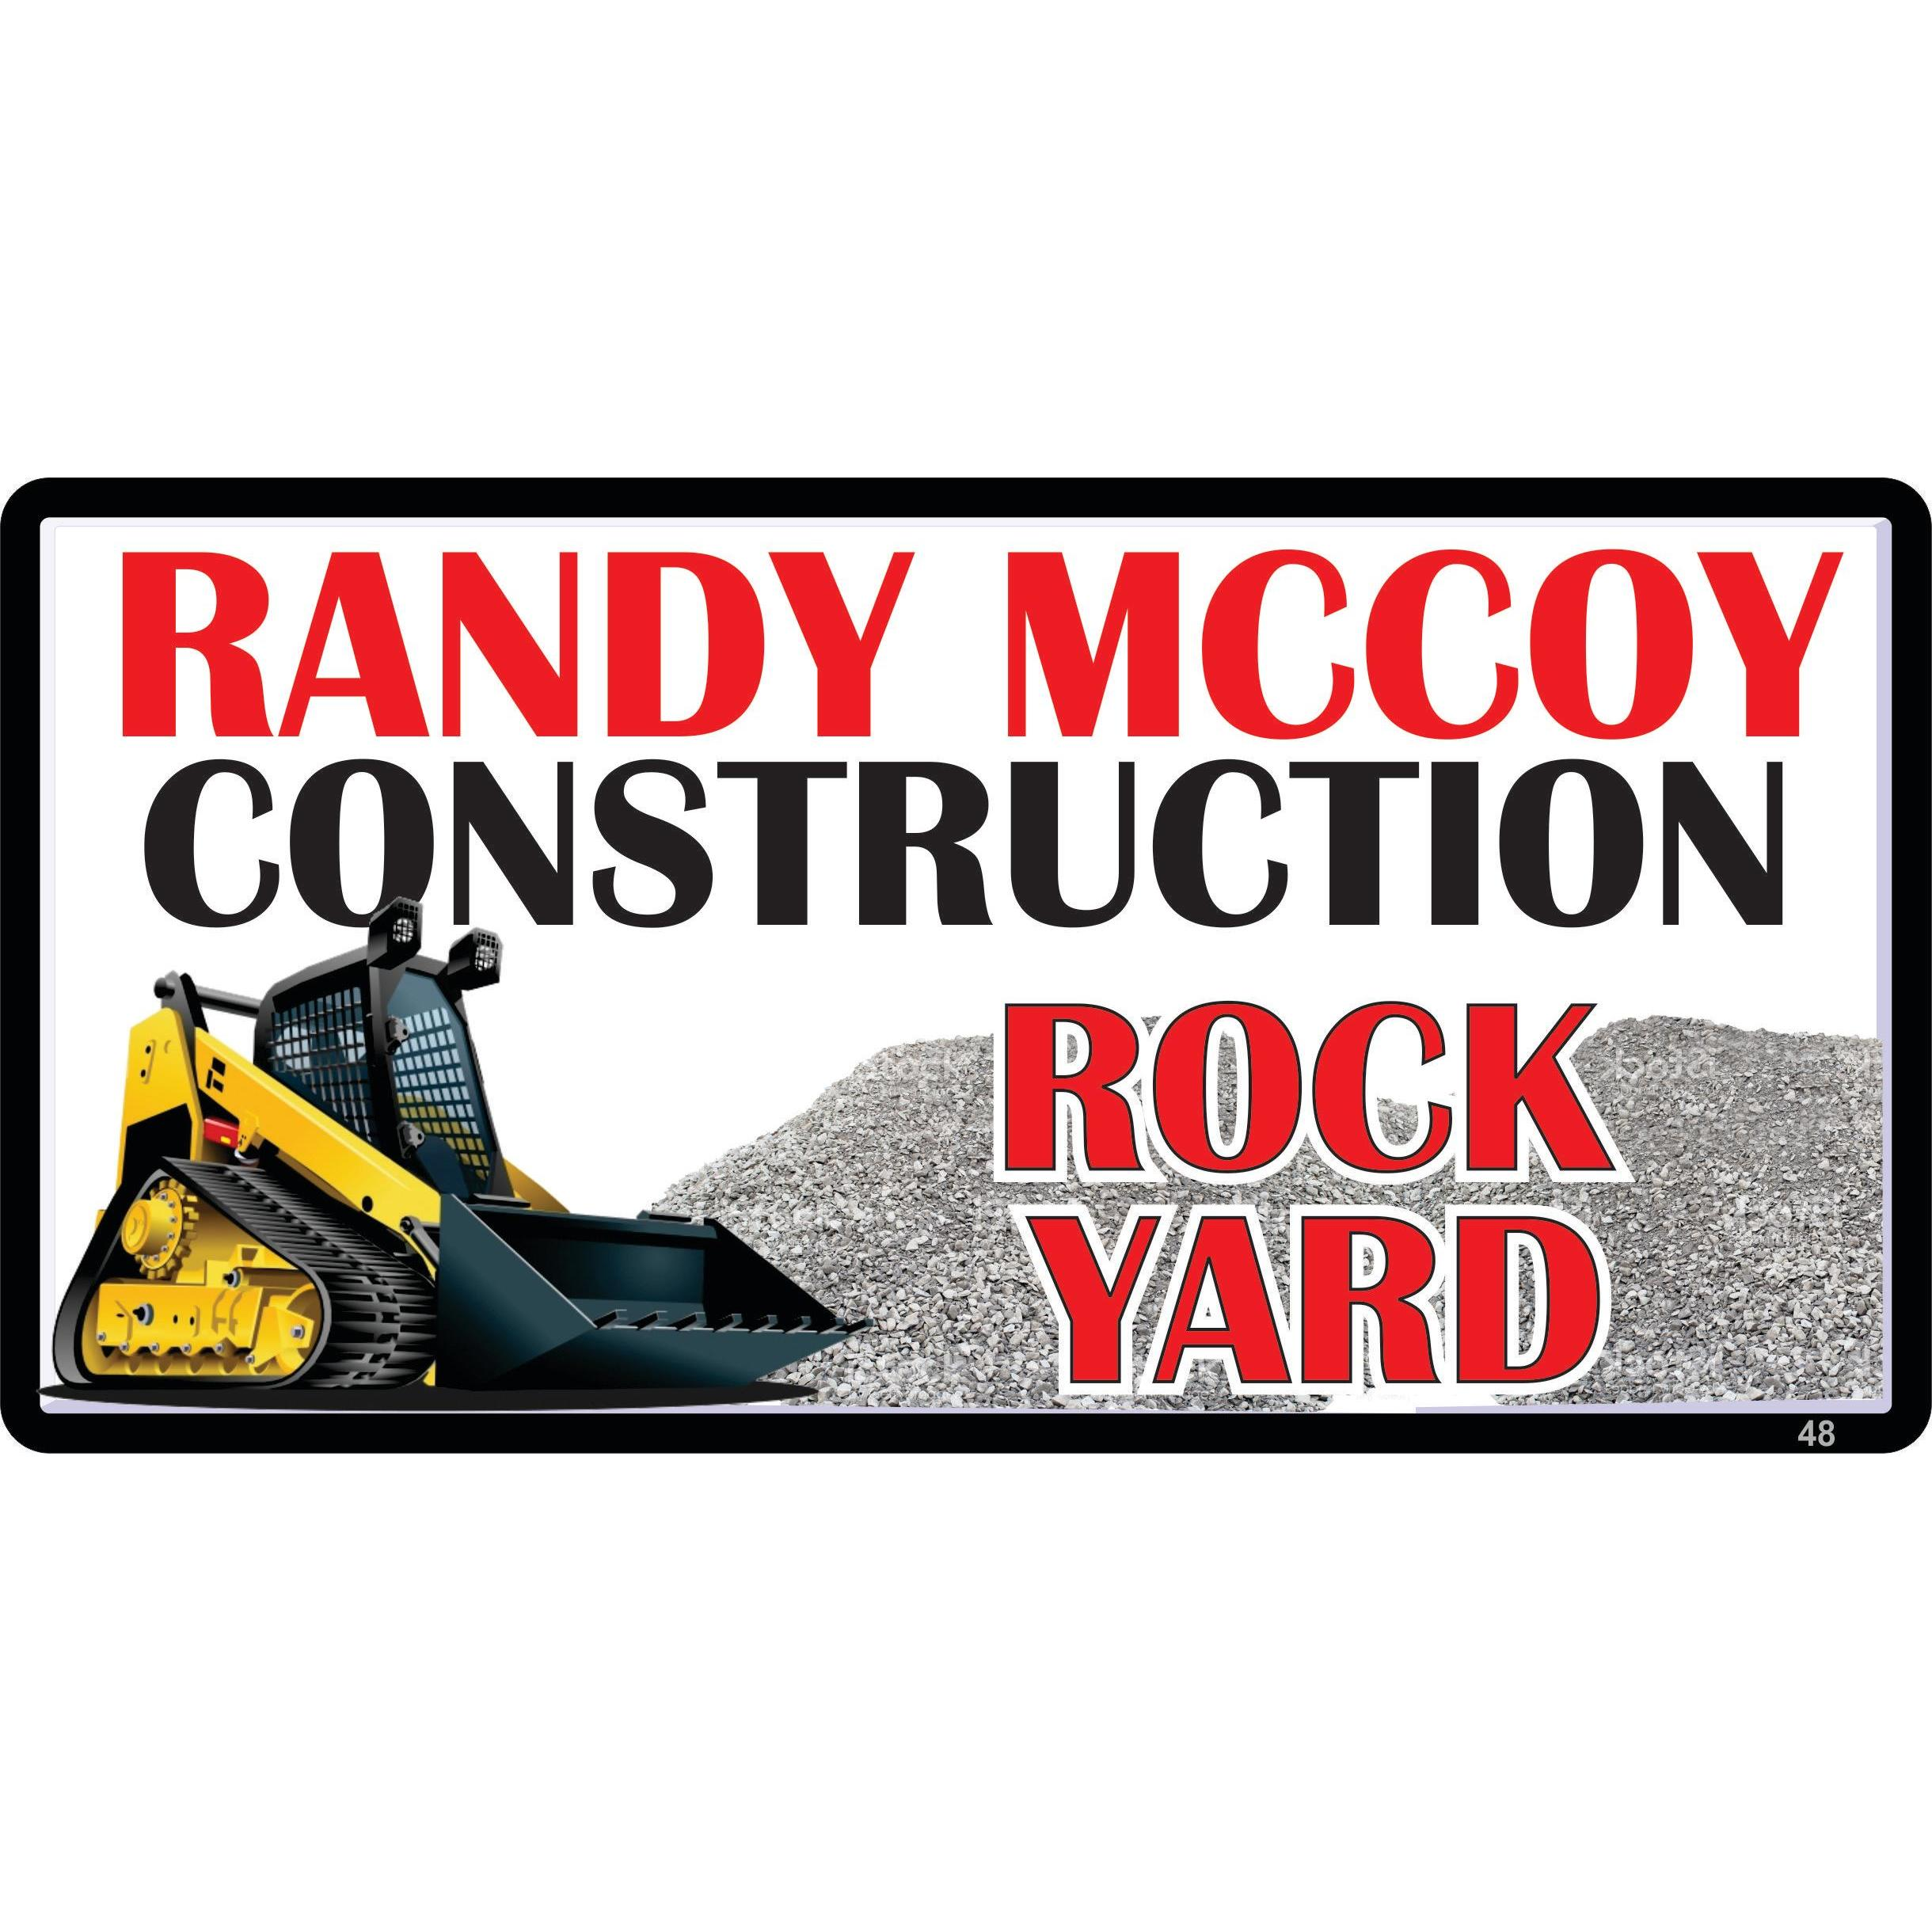 Randy Mccoy Construction - Rock Yard and Landscape Supply